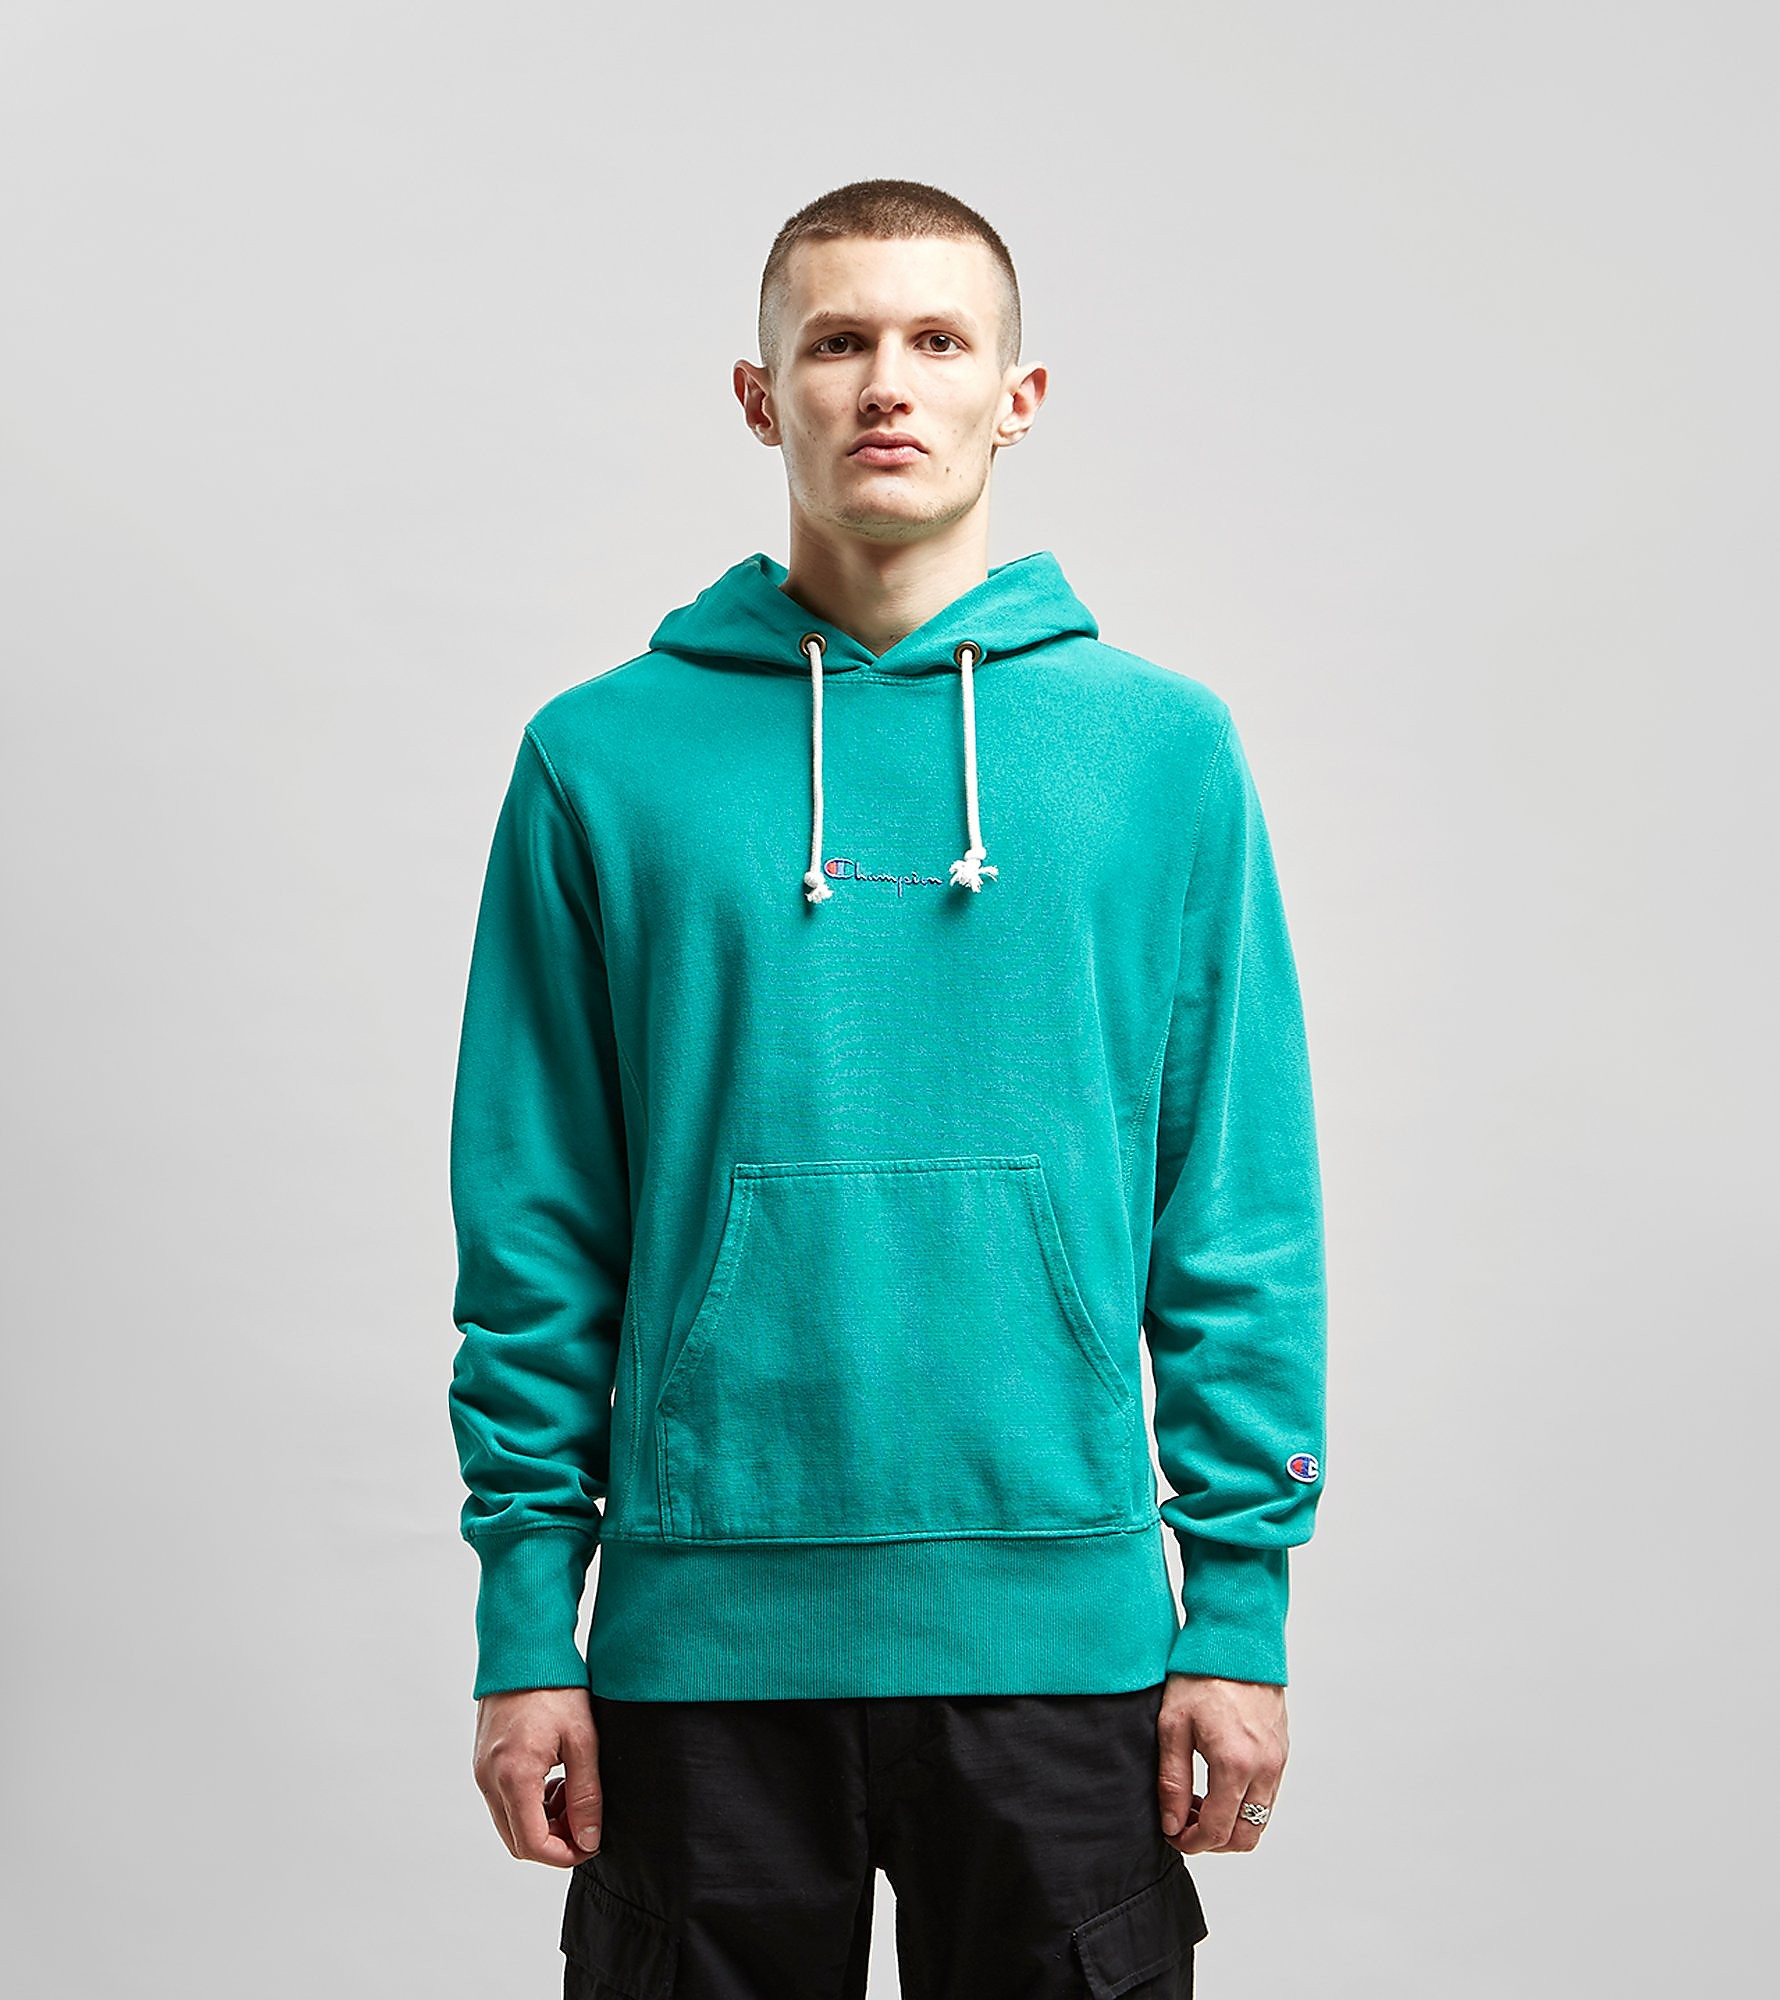 Champion Garment Dyed Hoody - size? Exclusive